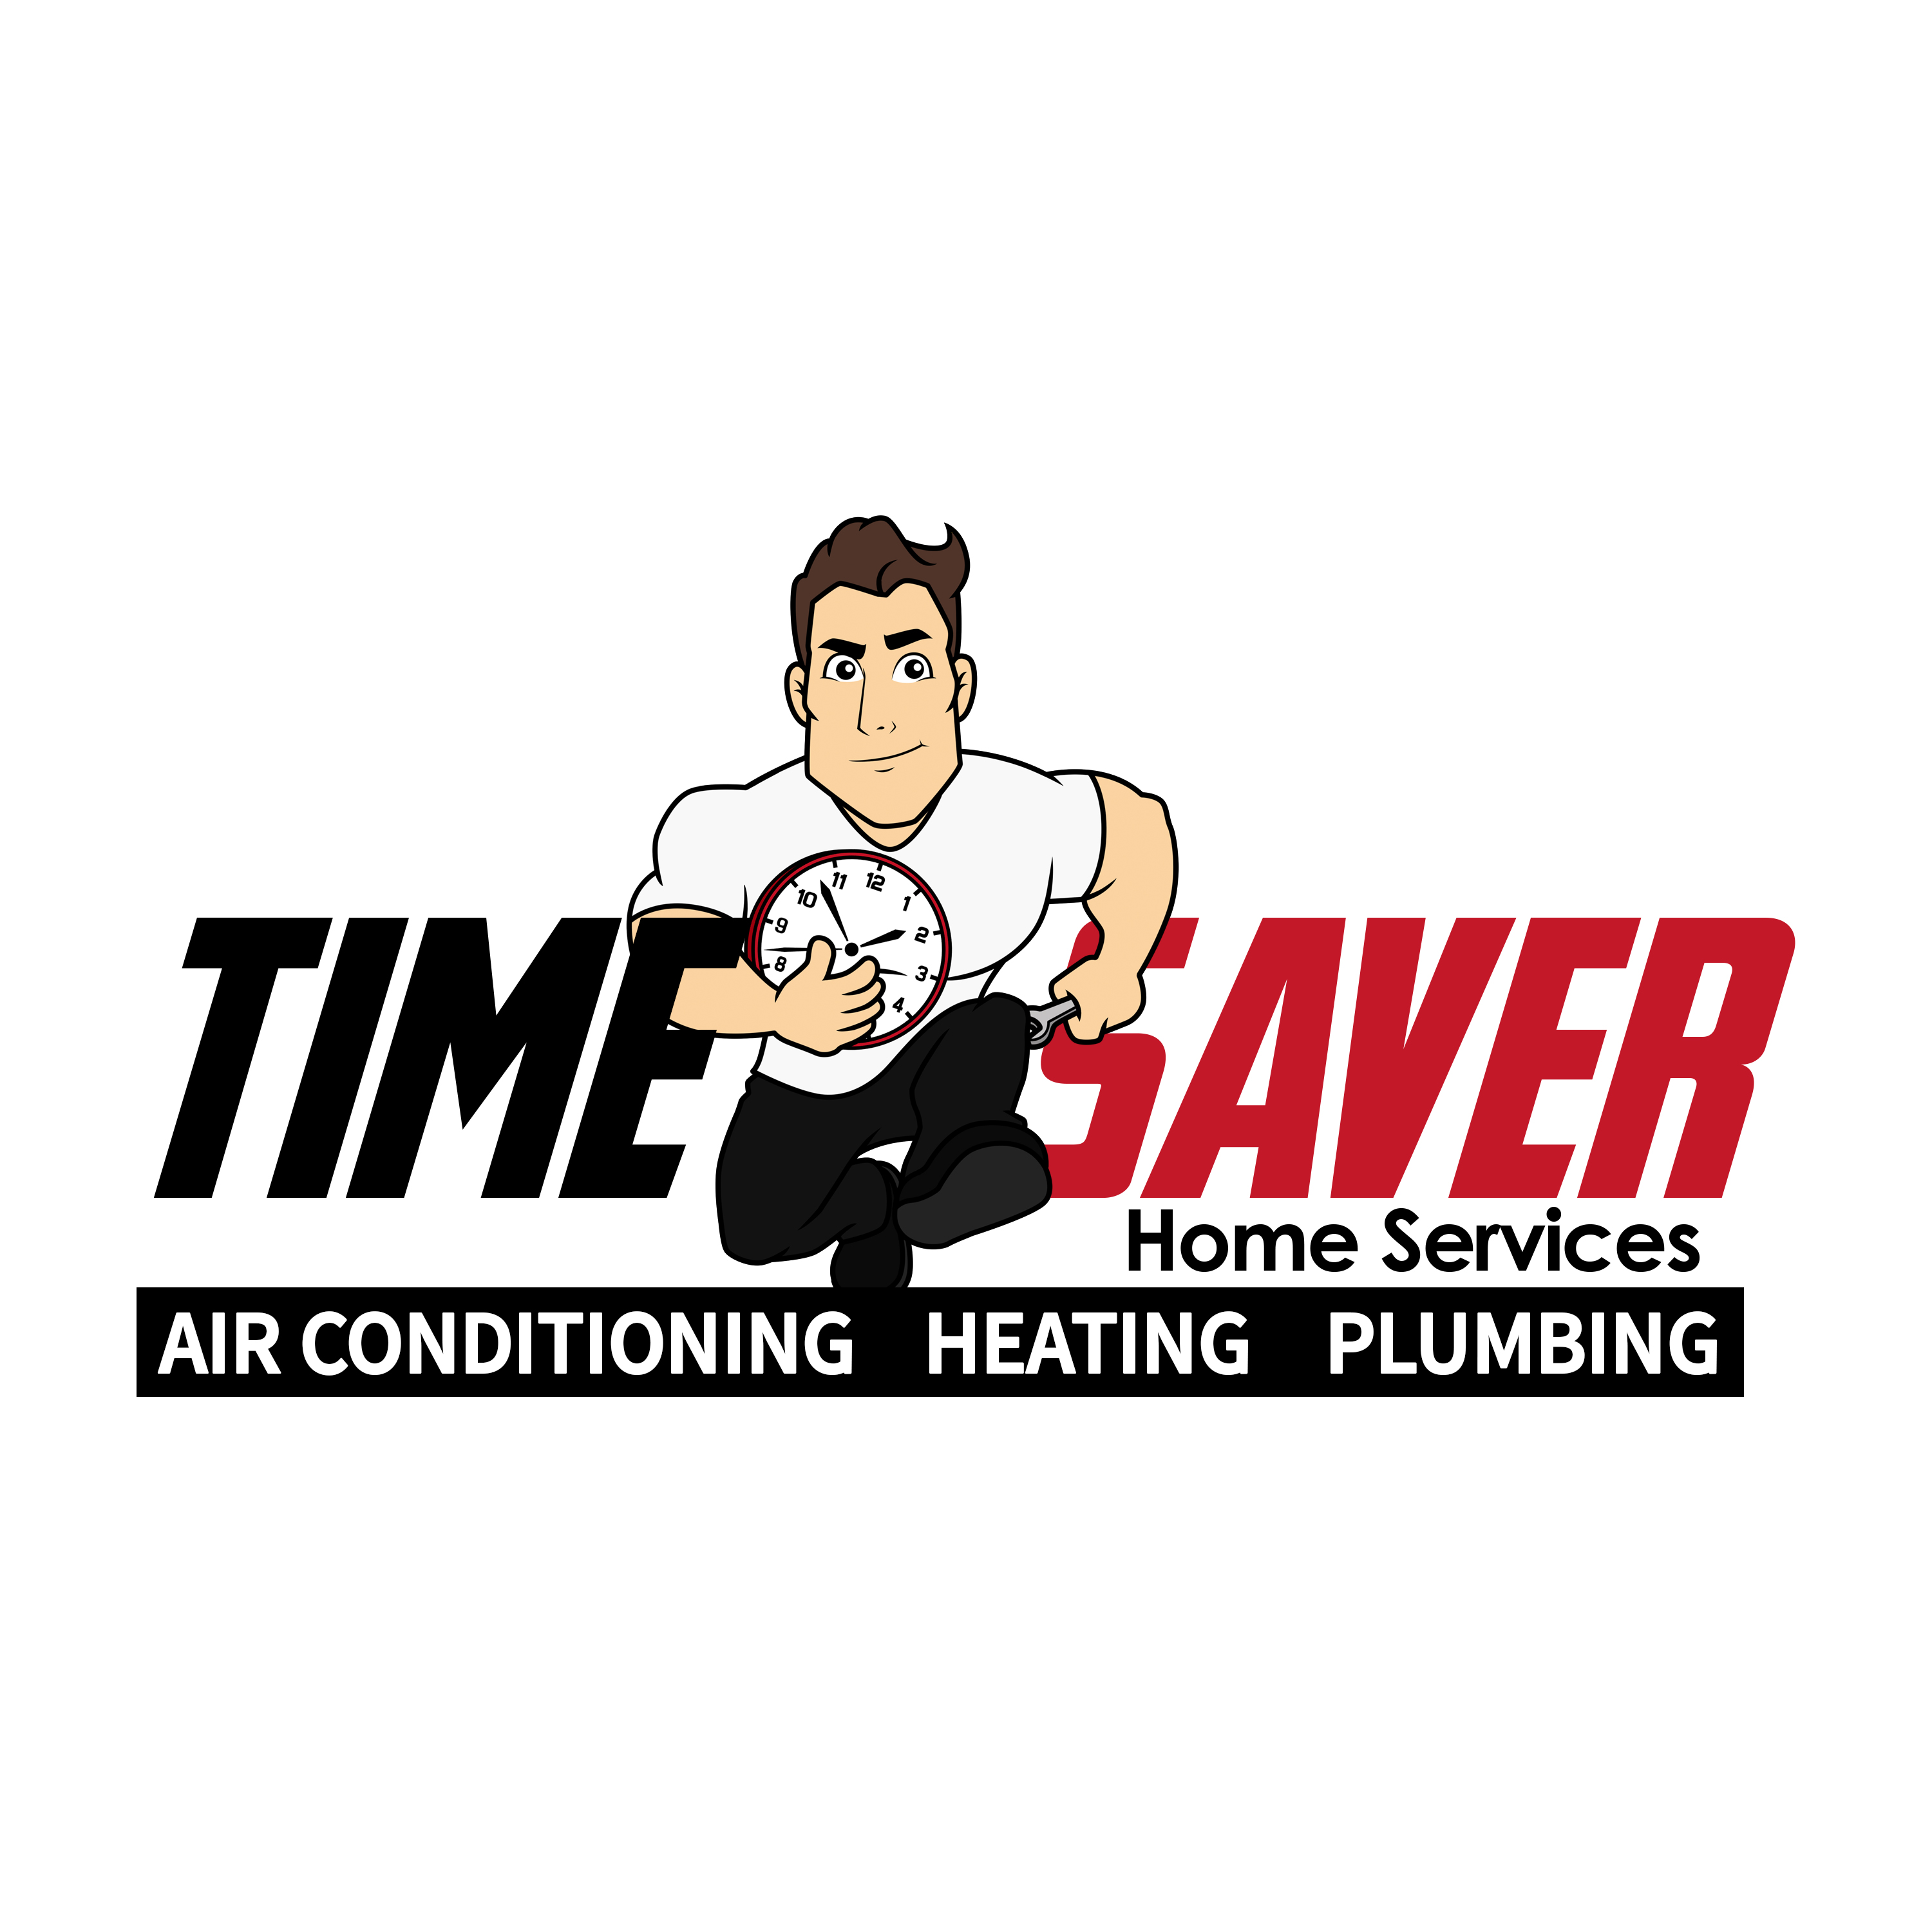 TimeSaver Home Services - Air Conditioning, Heating & Plumbing